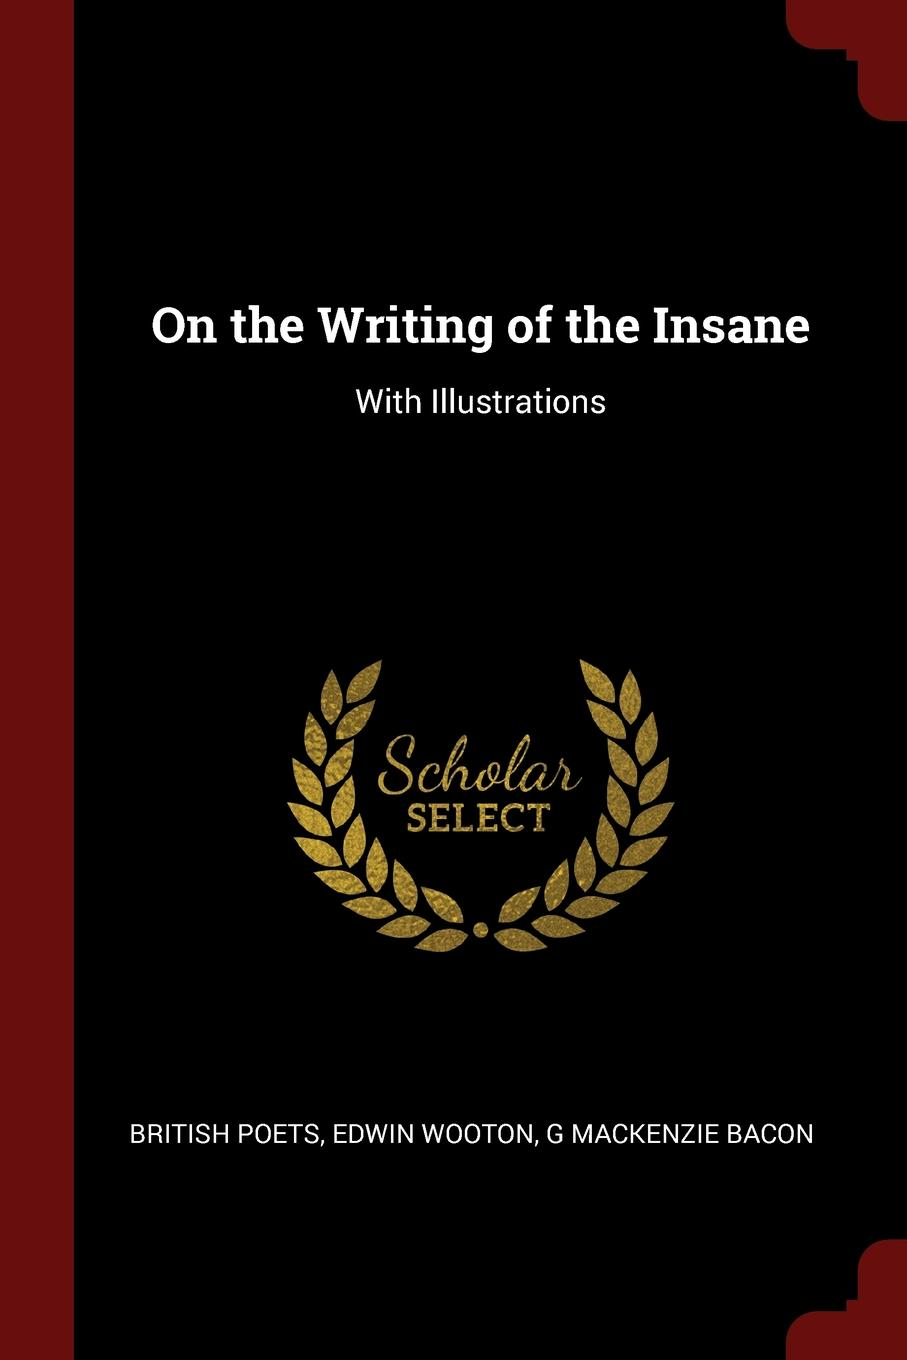 British Poets, Edwin Wooton, G Mackenzie Bacon On the Writing of Insane. With Illustrations